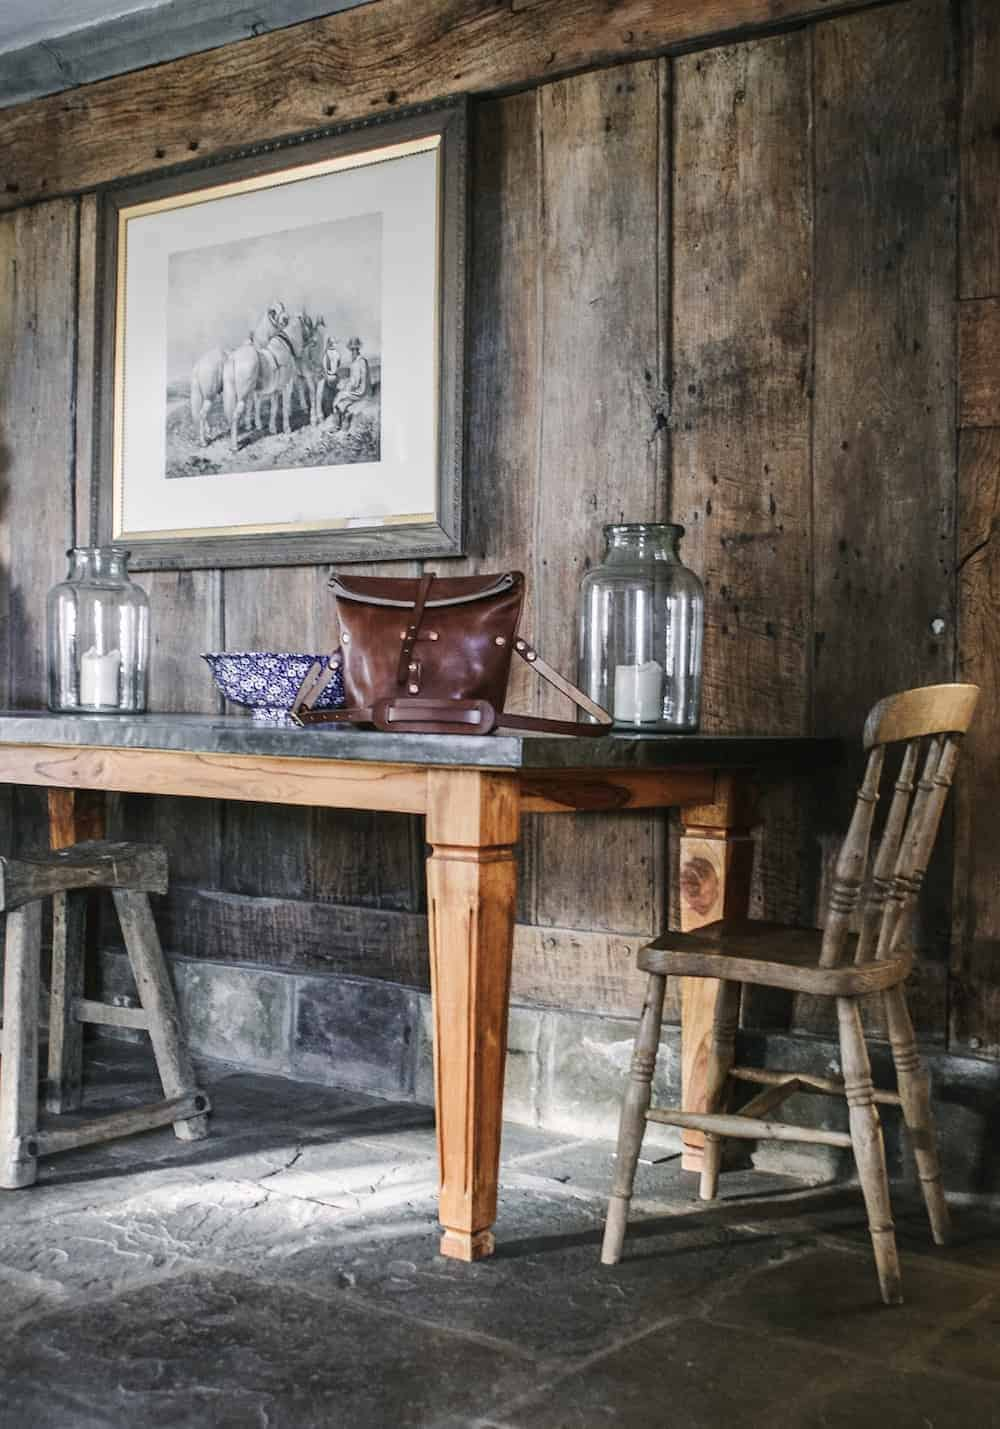 love this modern rustic wood panelled living room with galvanised top wooden table and old wooden farmhouse chairs at patrishow farm in wales - white washed walls, stone floor, reclaimed wooden units, galvanised metal worktop and butler sink with shelves of vintage and found country objects. This is the perfect dog friendly welsh holiday cottage. Click through to find out more and to see lots of beautiful images from our stay there